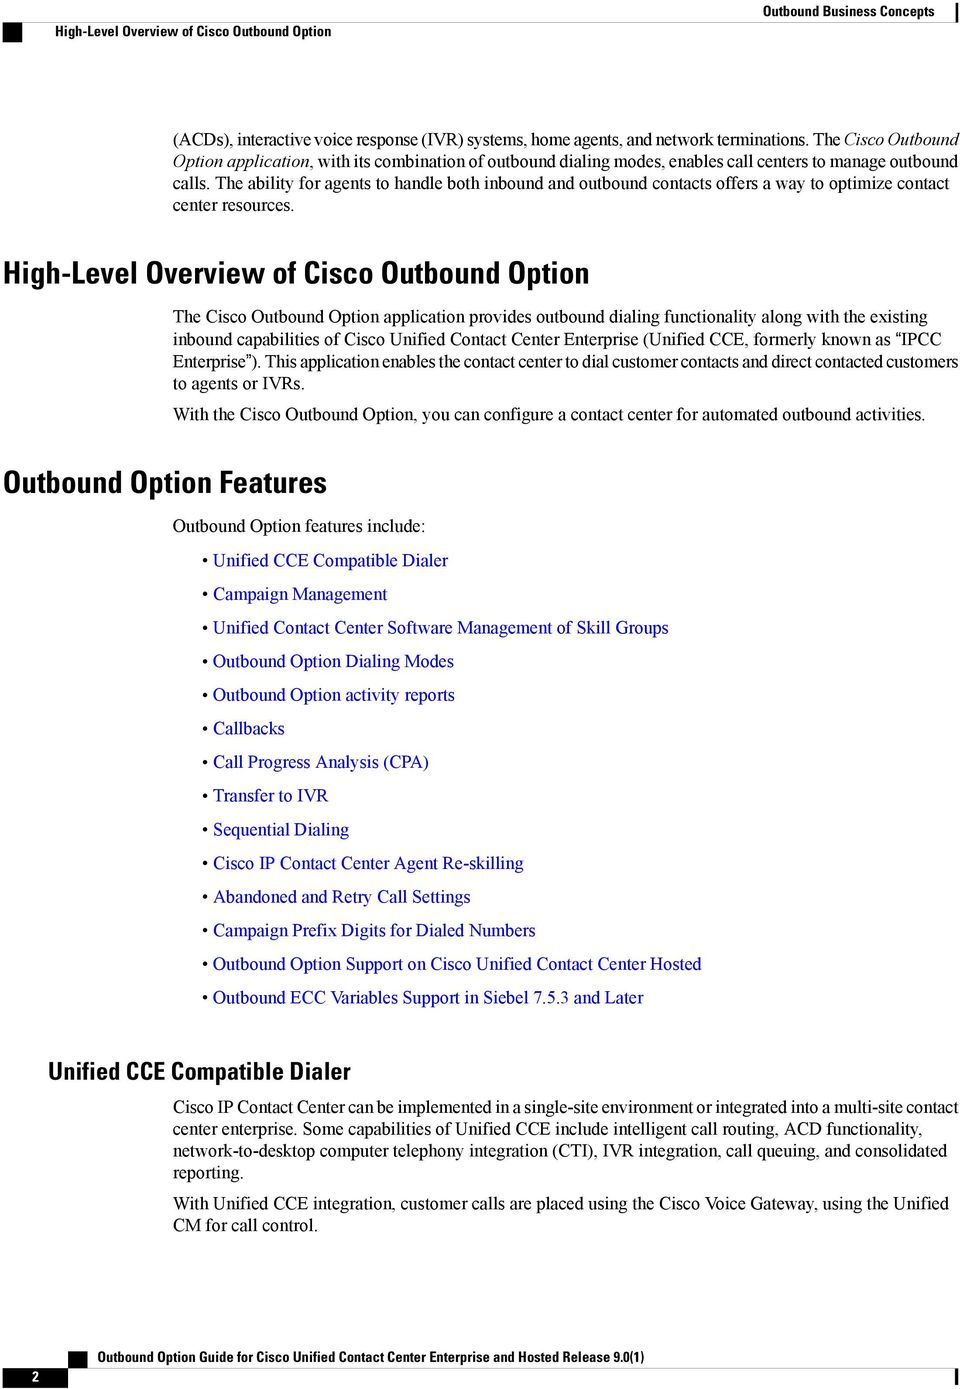 Outbound Option Guide for Cisco Unified Contact Center Enterprise